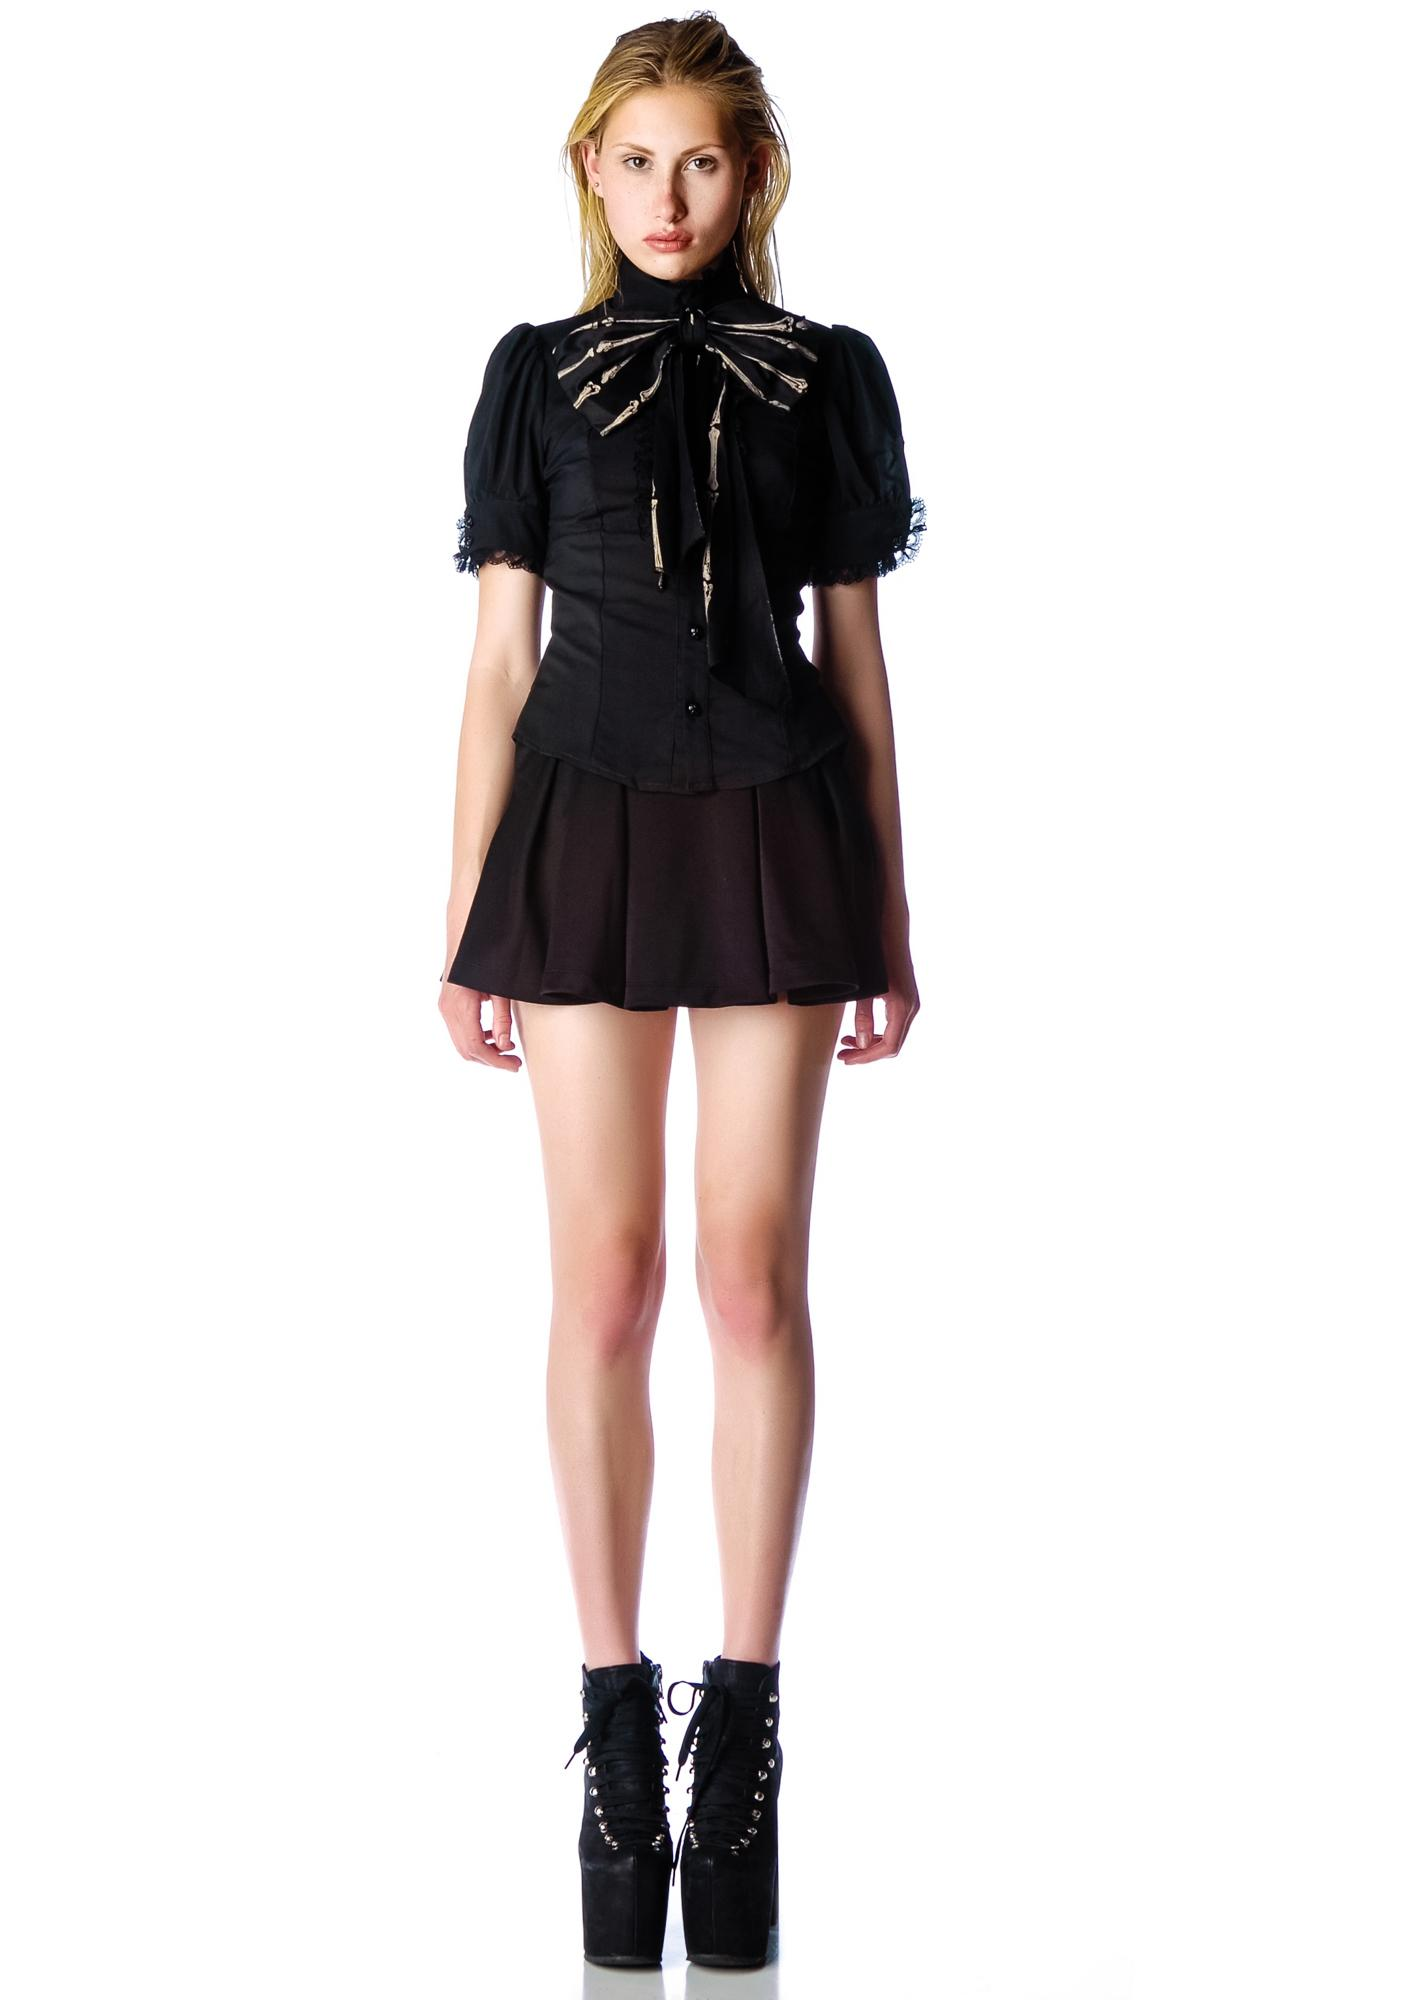 Lip Service Bones Bow Blouse